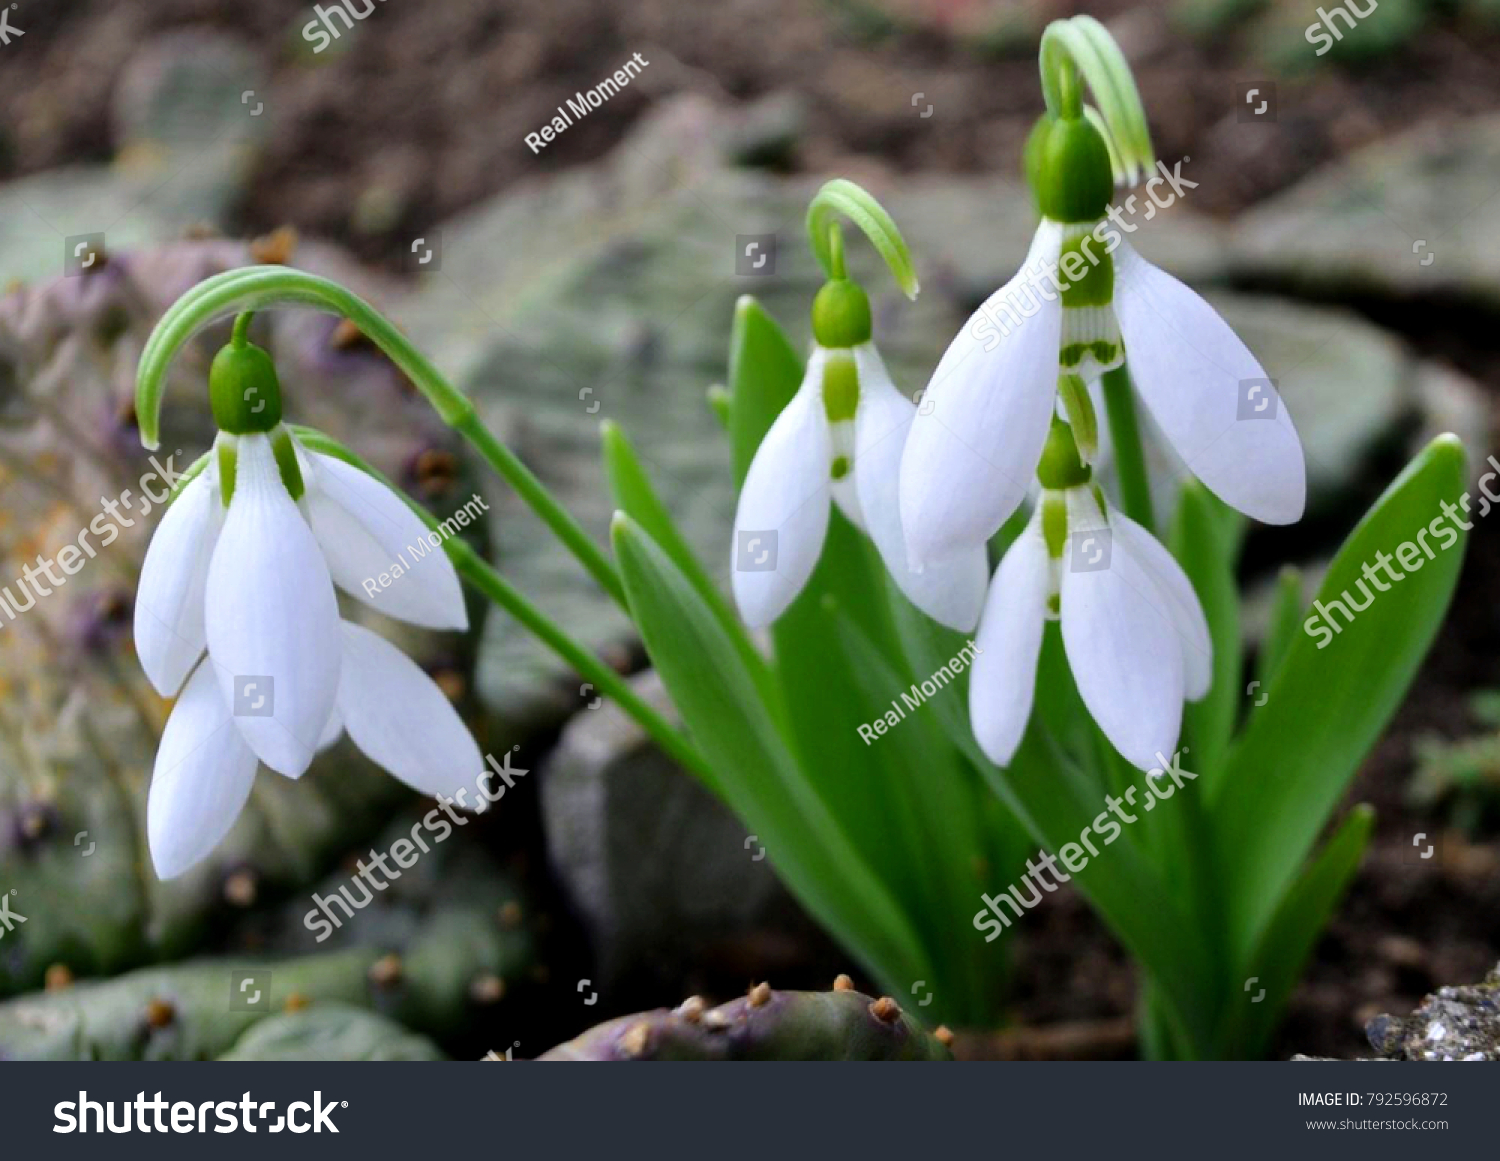 Tell us everything about Snowdrops .... Why are they considered rare colors of the spring ... I did not have to see them